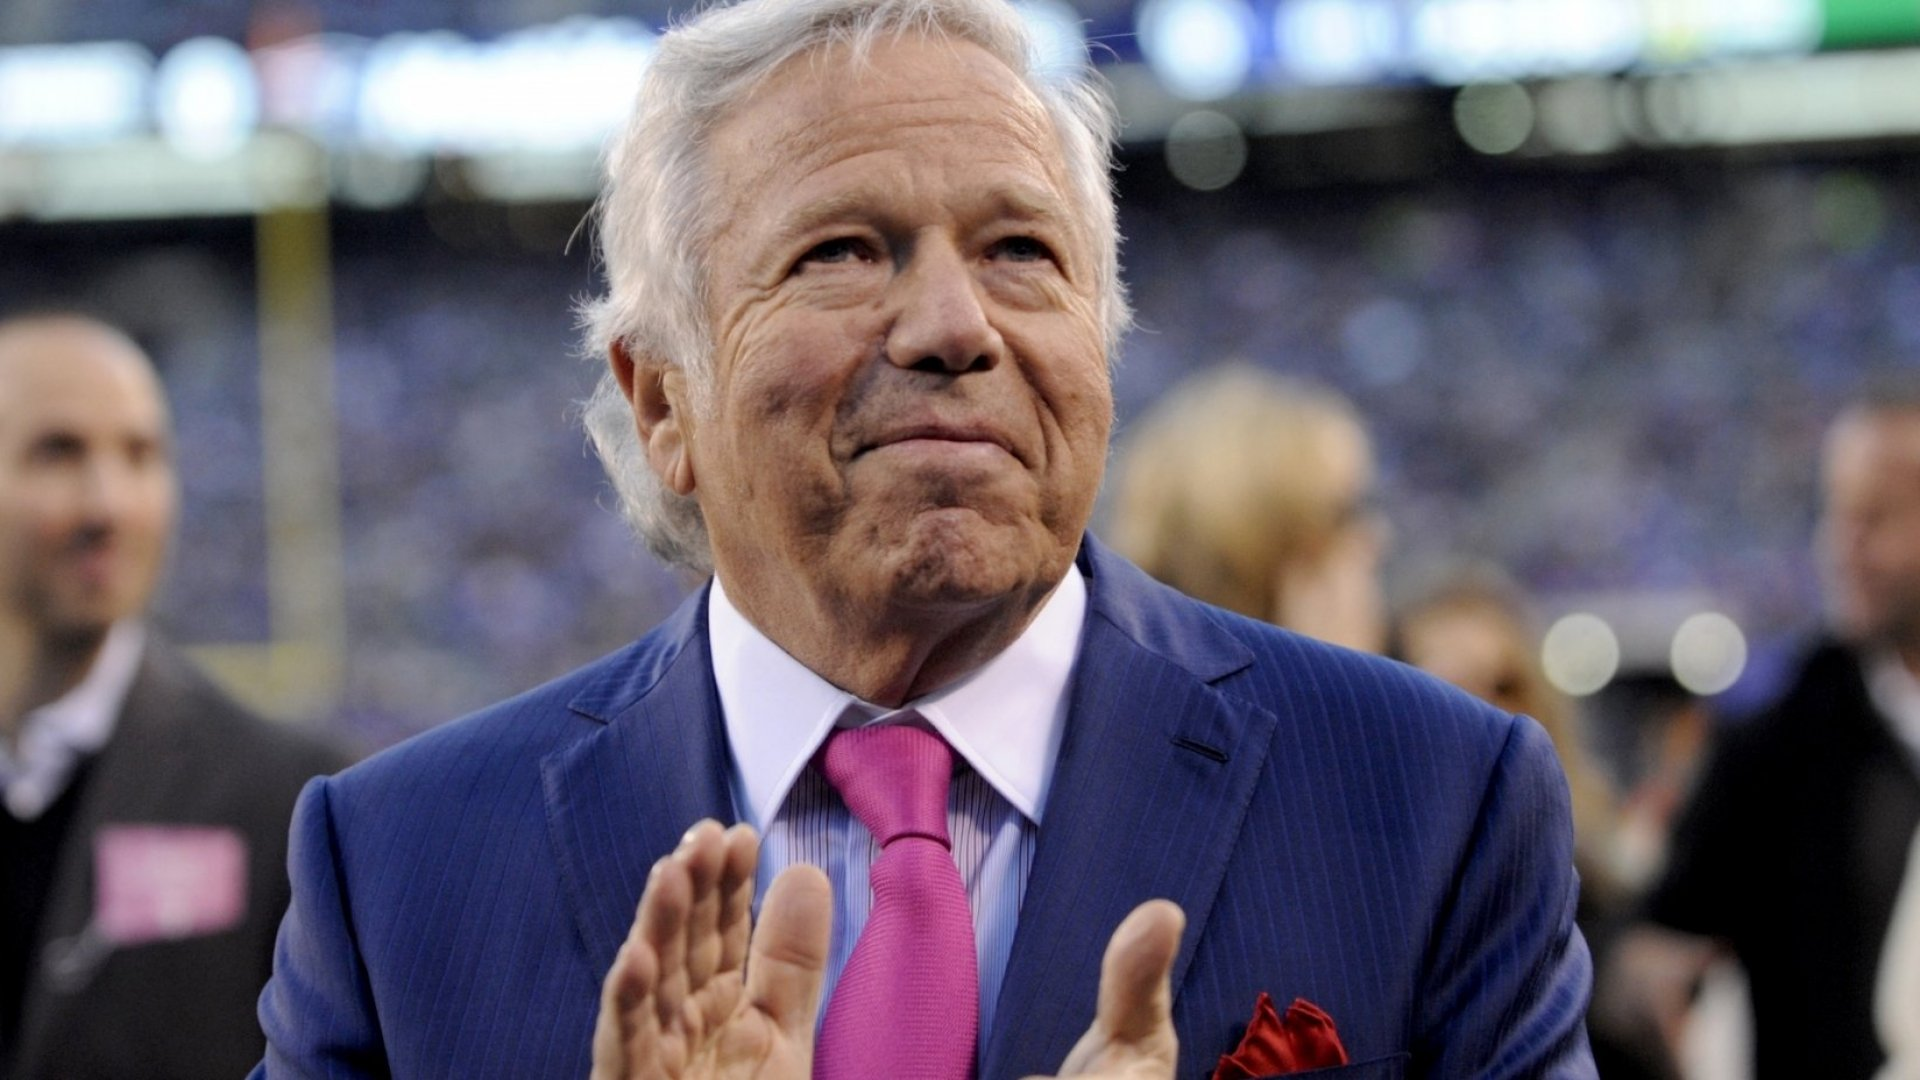 From $227 Million to $3.8 Billion: The Unlikely Story of How Robert Kraft Bought the New England Patriots